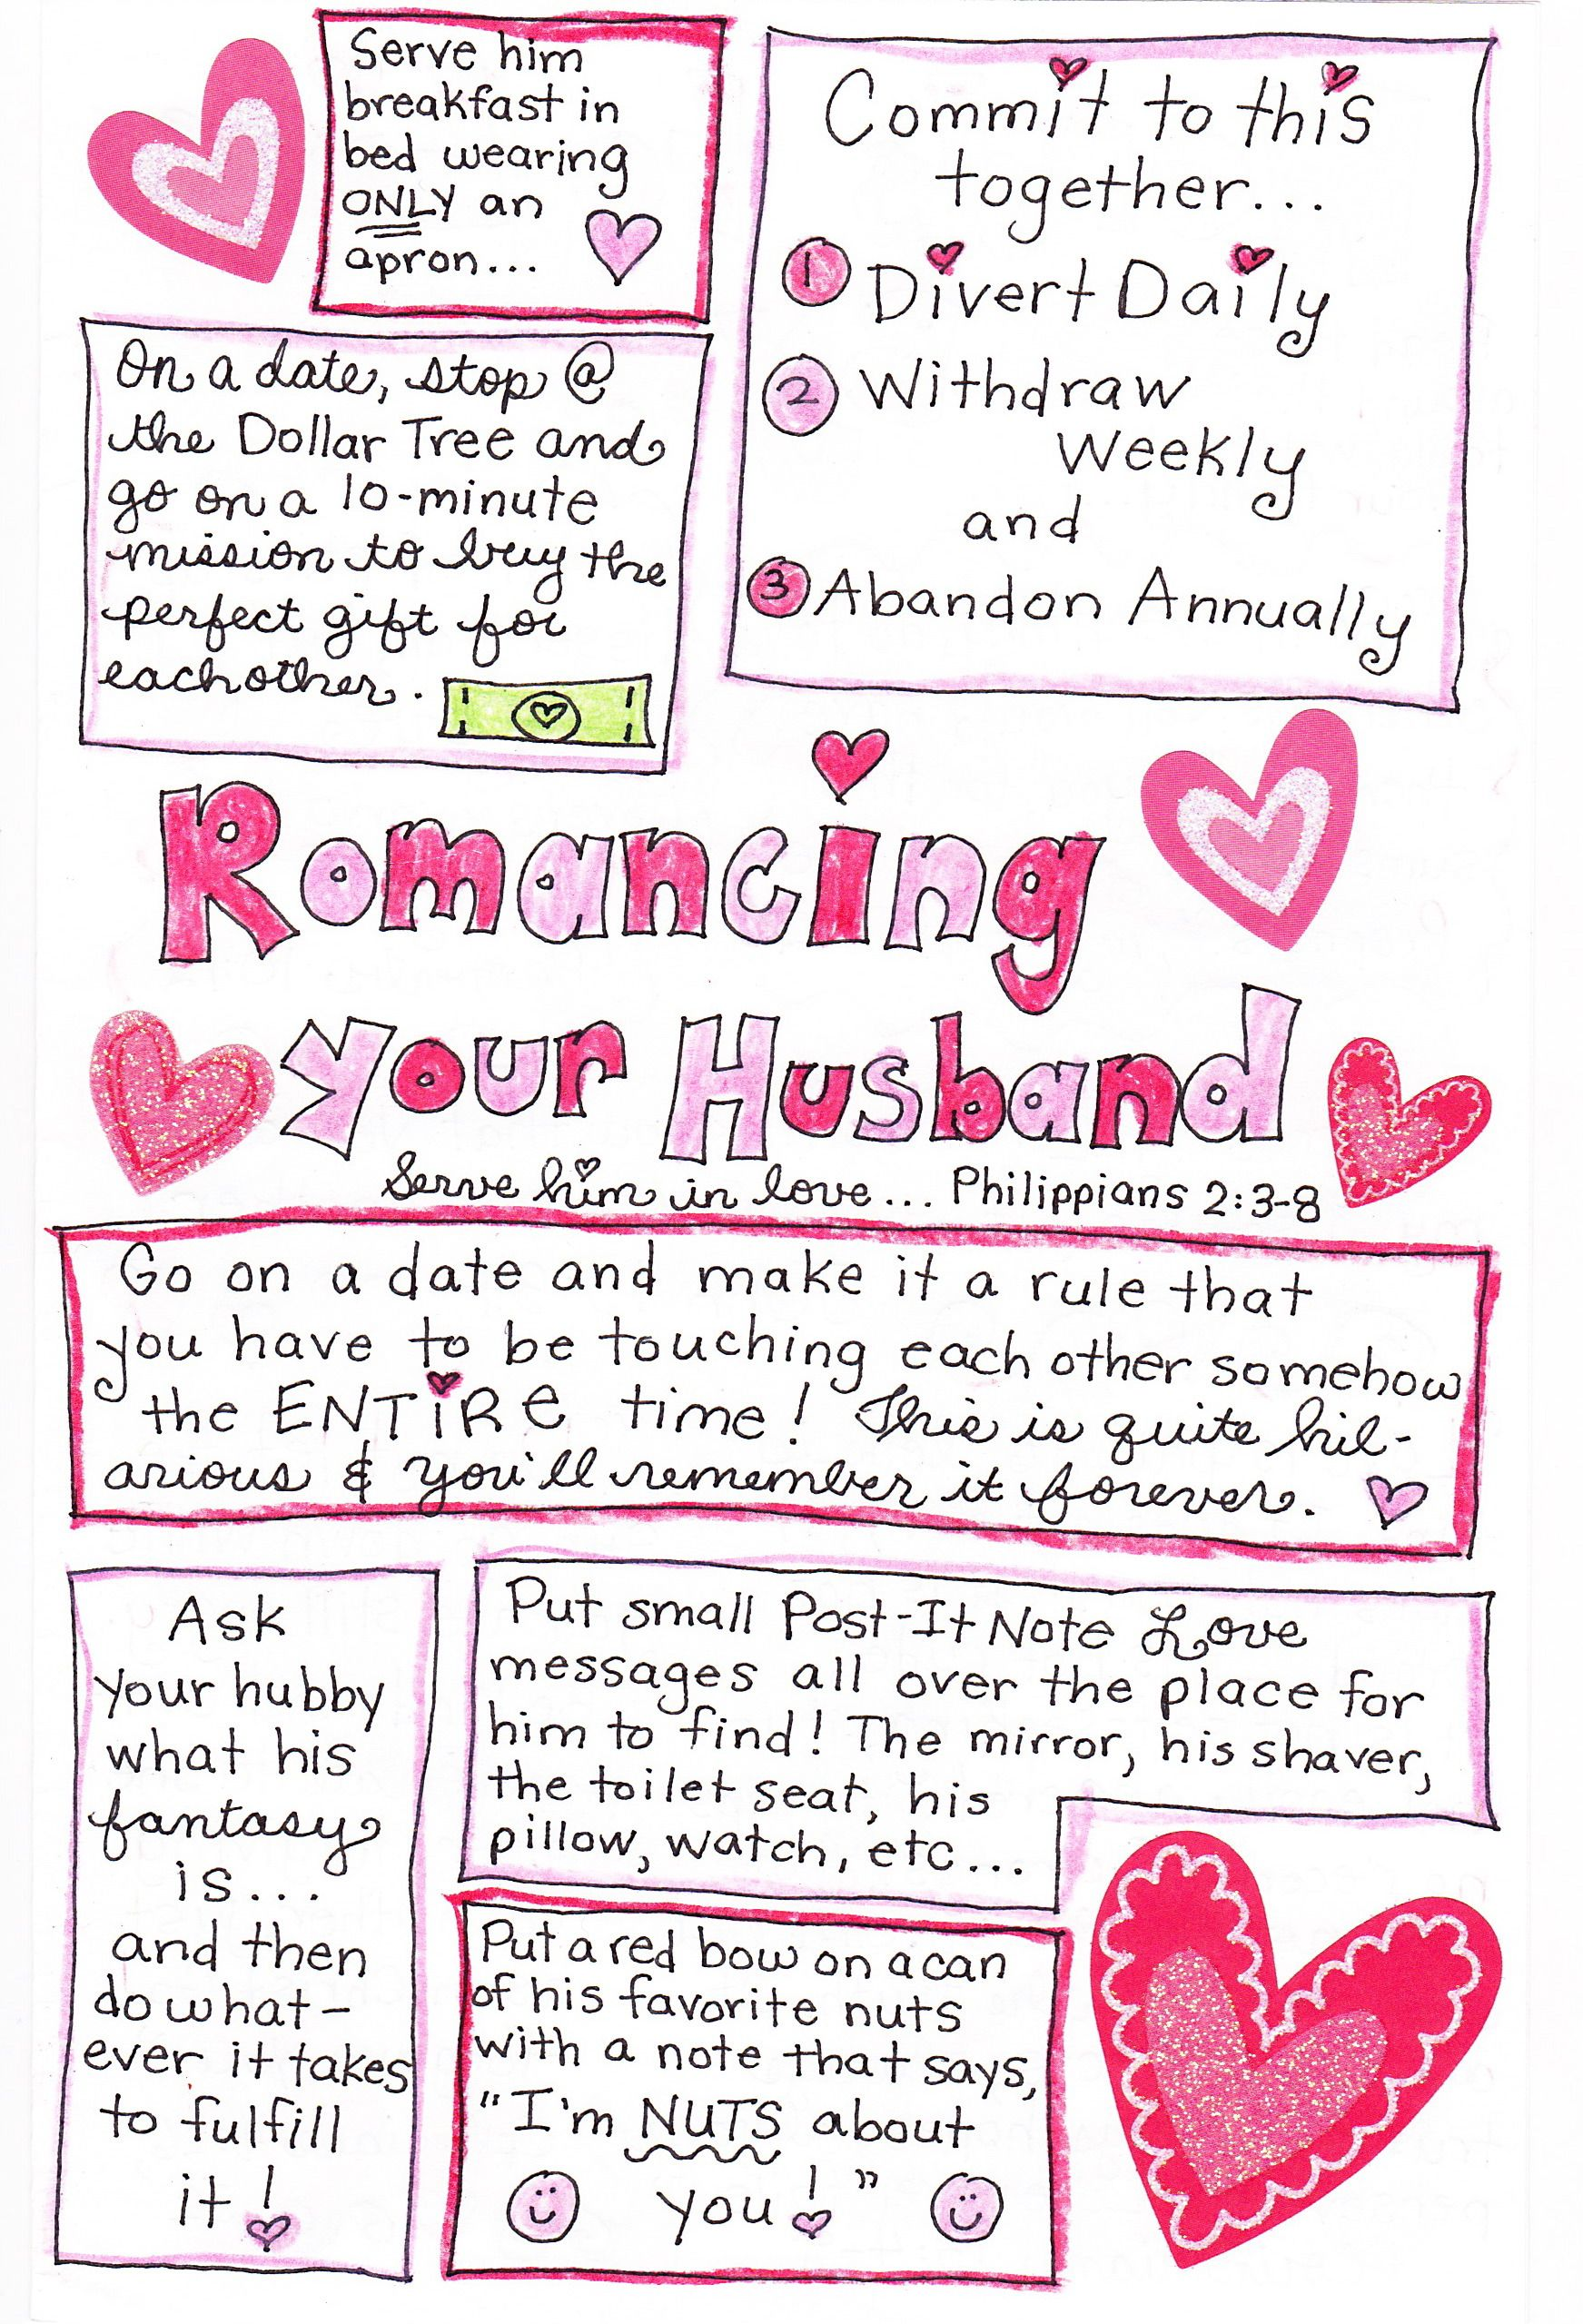 The 25 Days of Love Fun - Day 11: Romancing The Happy Hubby Part 1 ...